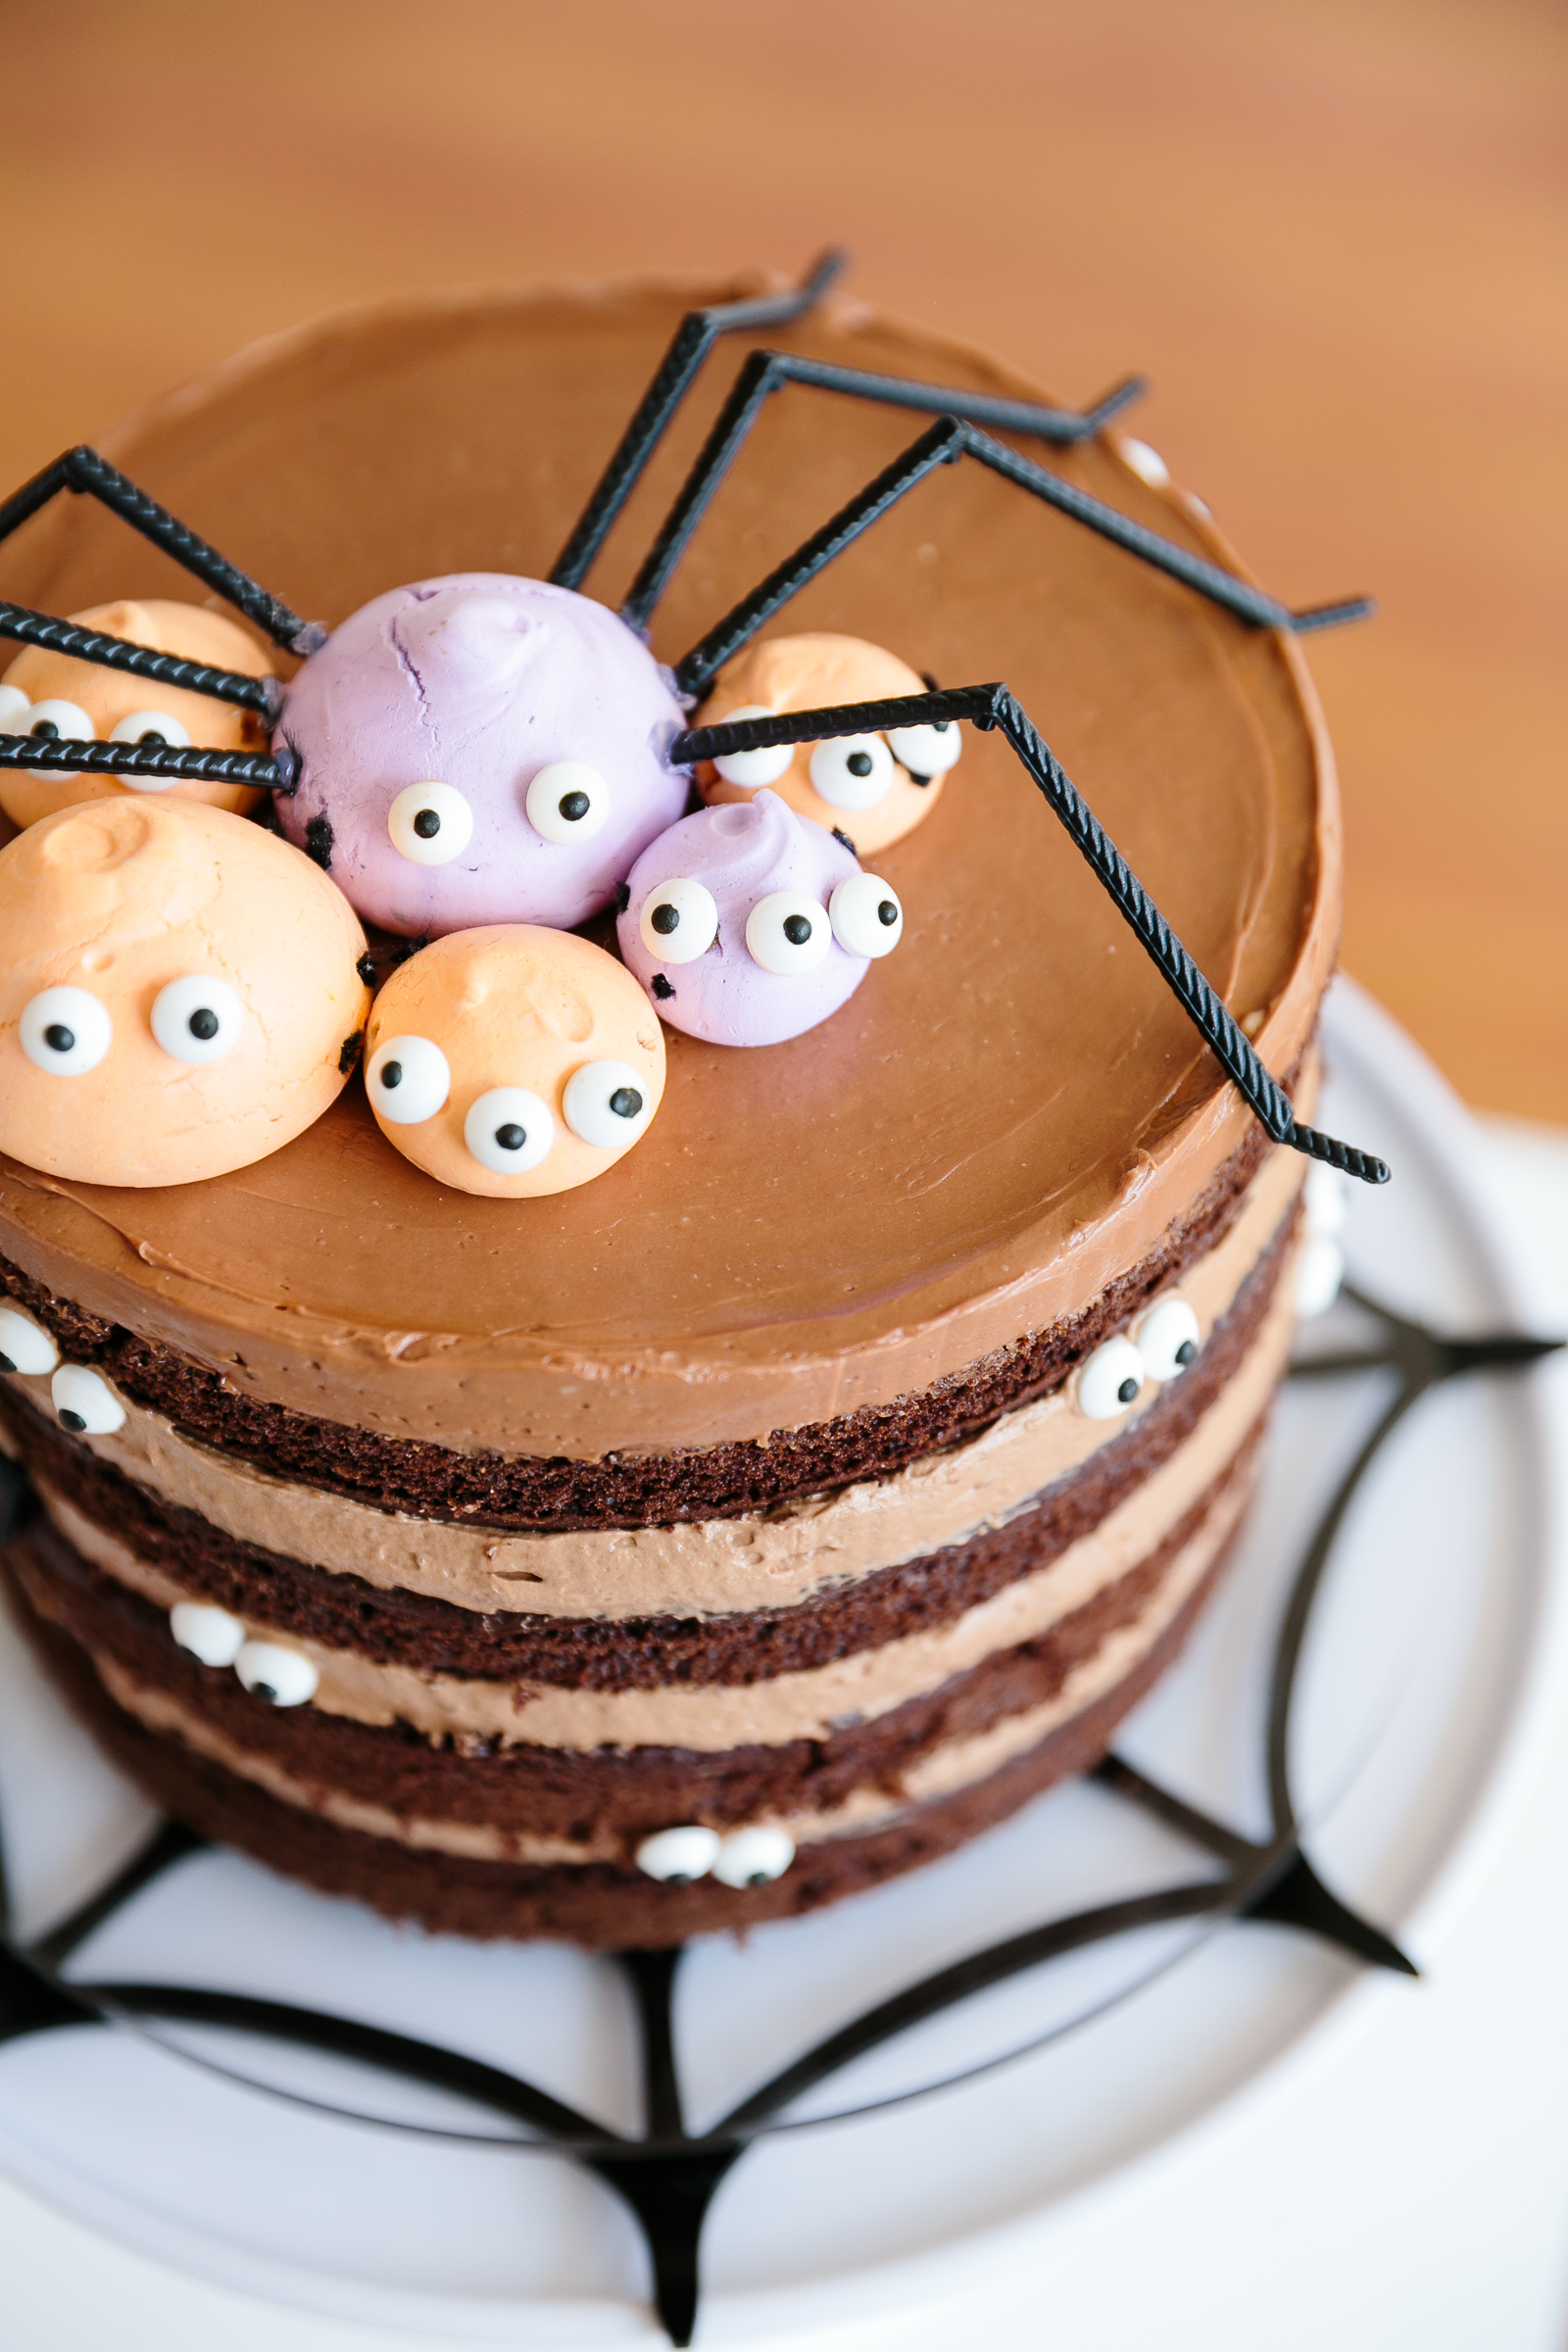 Halloween cake with chocolate frosting and edible spider decorations